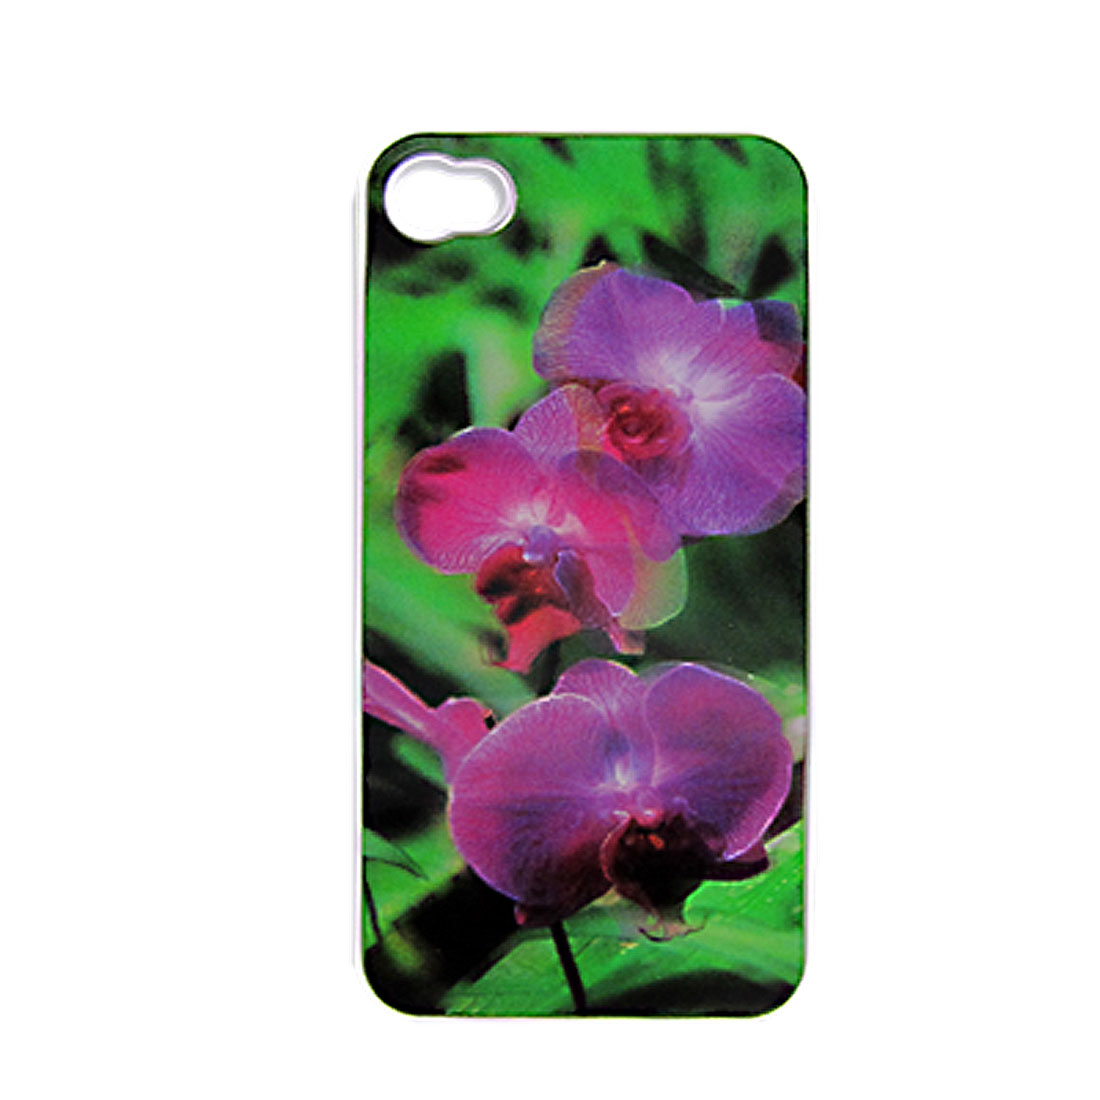 Amaranth Green 3D Floral Hard Plastic Back Case for iPhone 4 4G